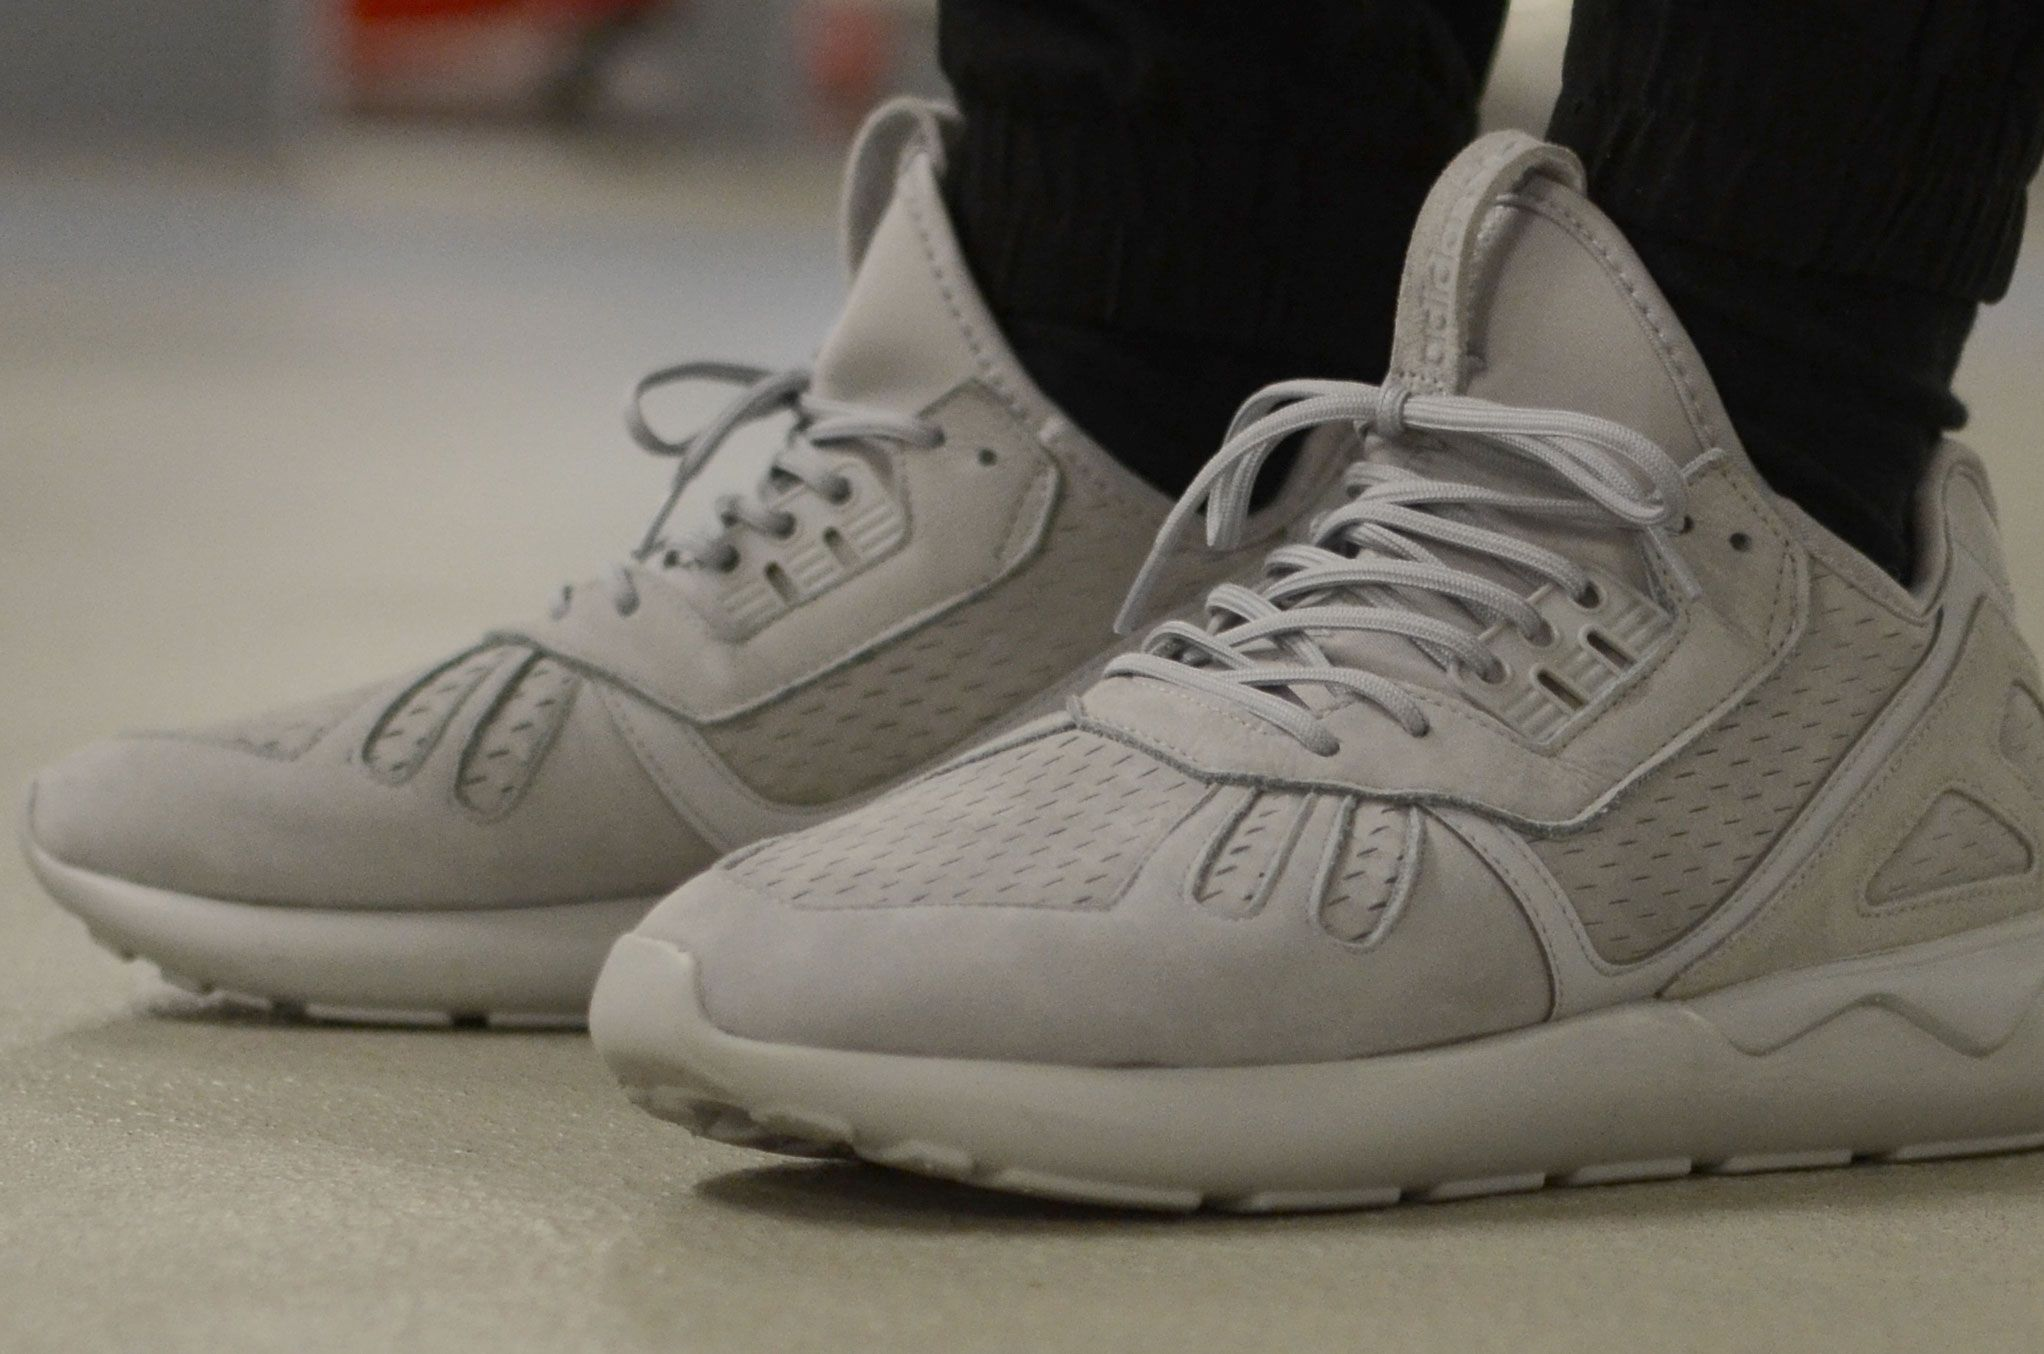 adidas tubular runner shop online